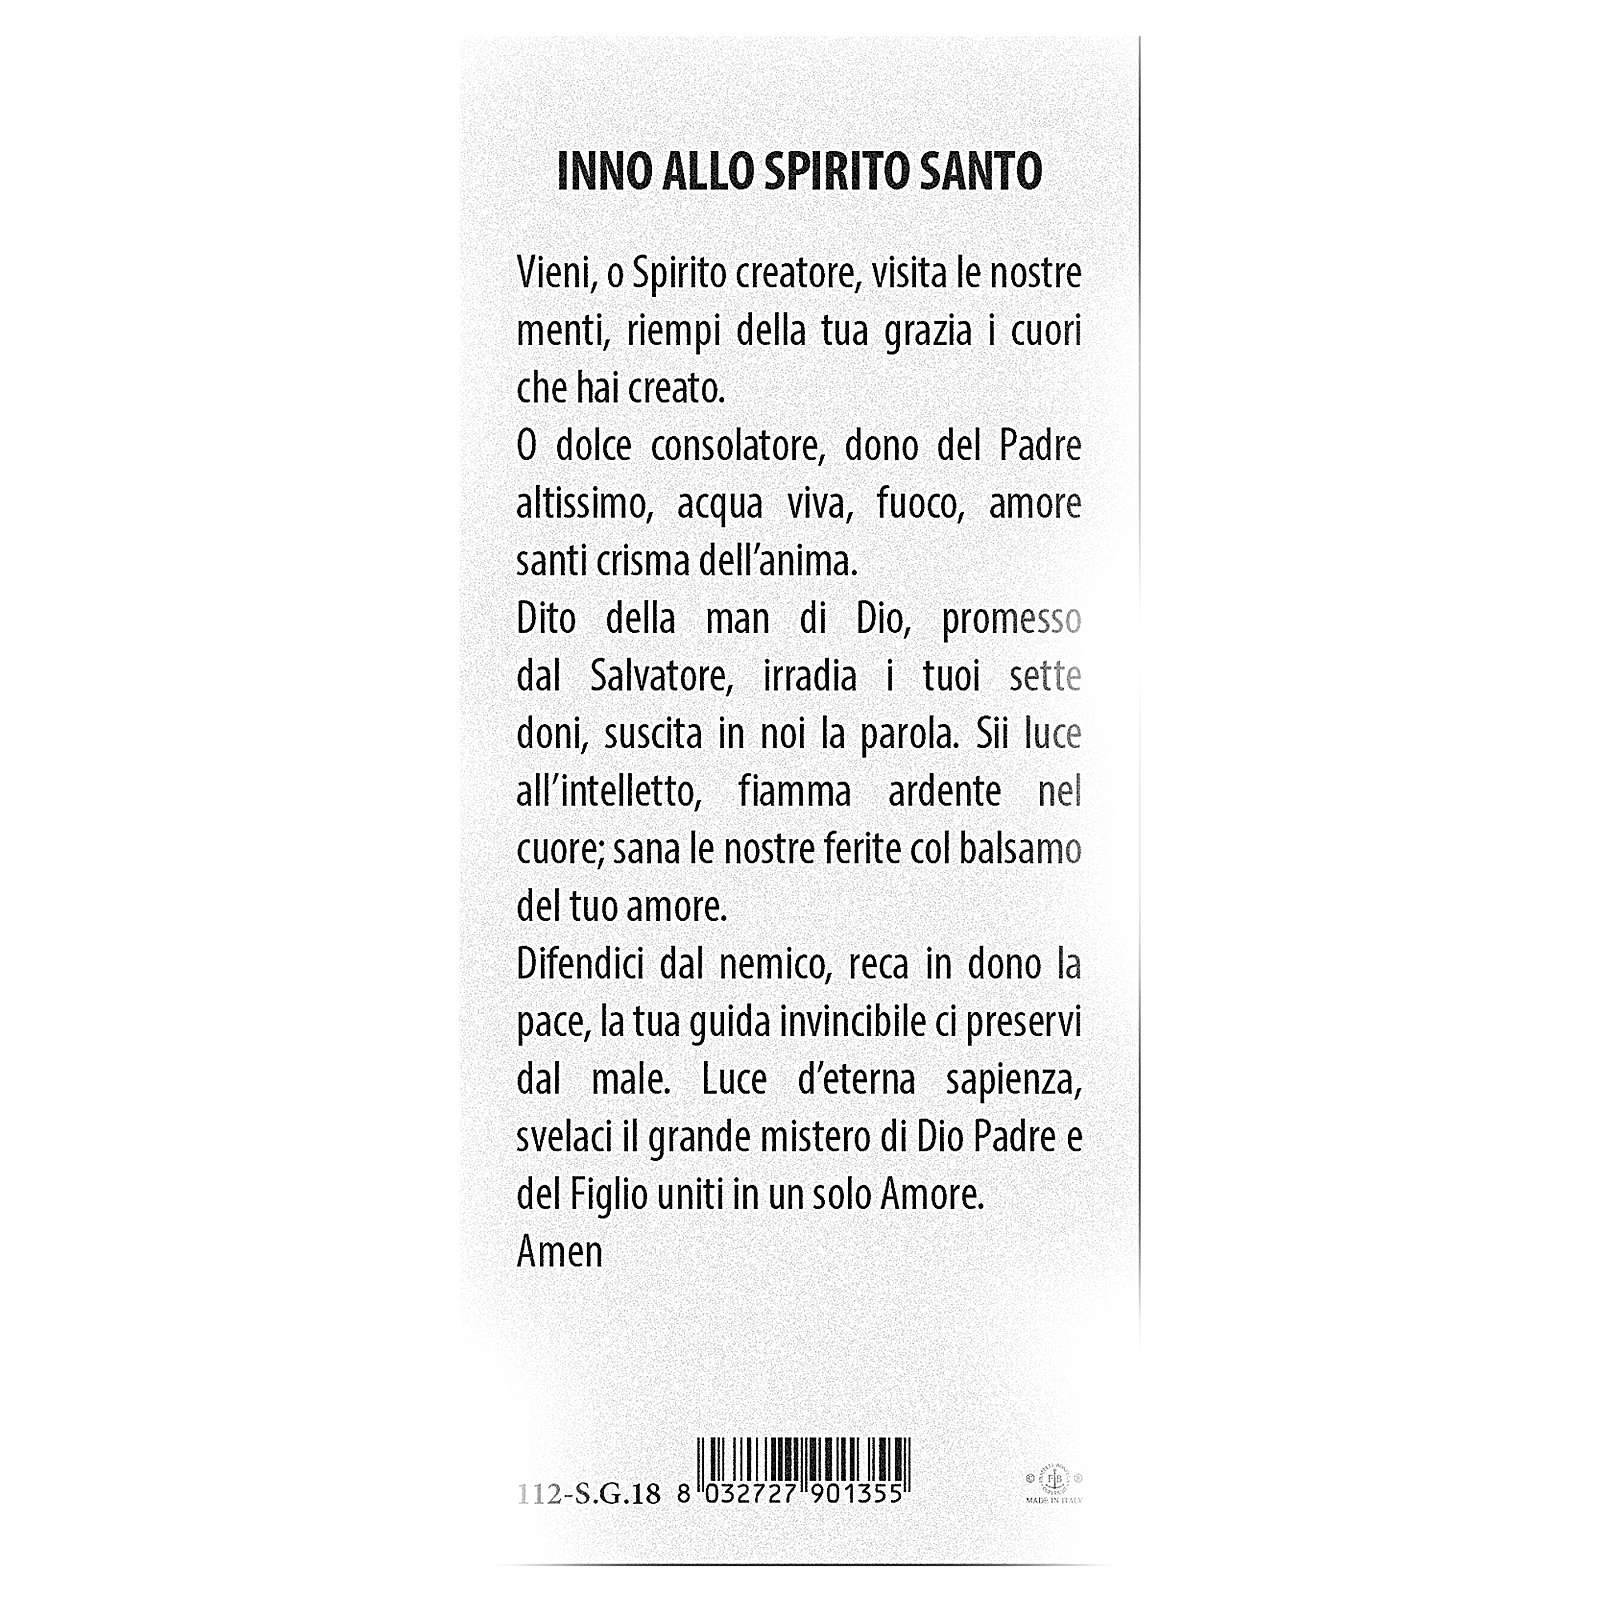 Bookmark in pearl cardboard hymn to the Holy Spirit for Pentecost 15x5 cm ITA 4